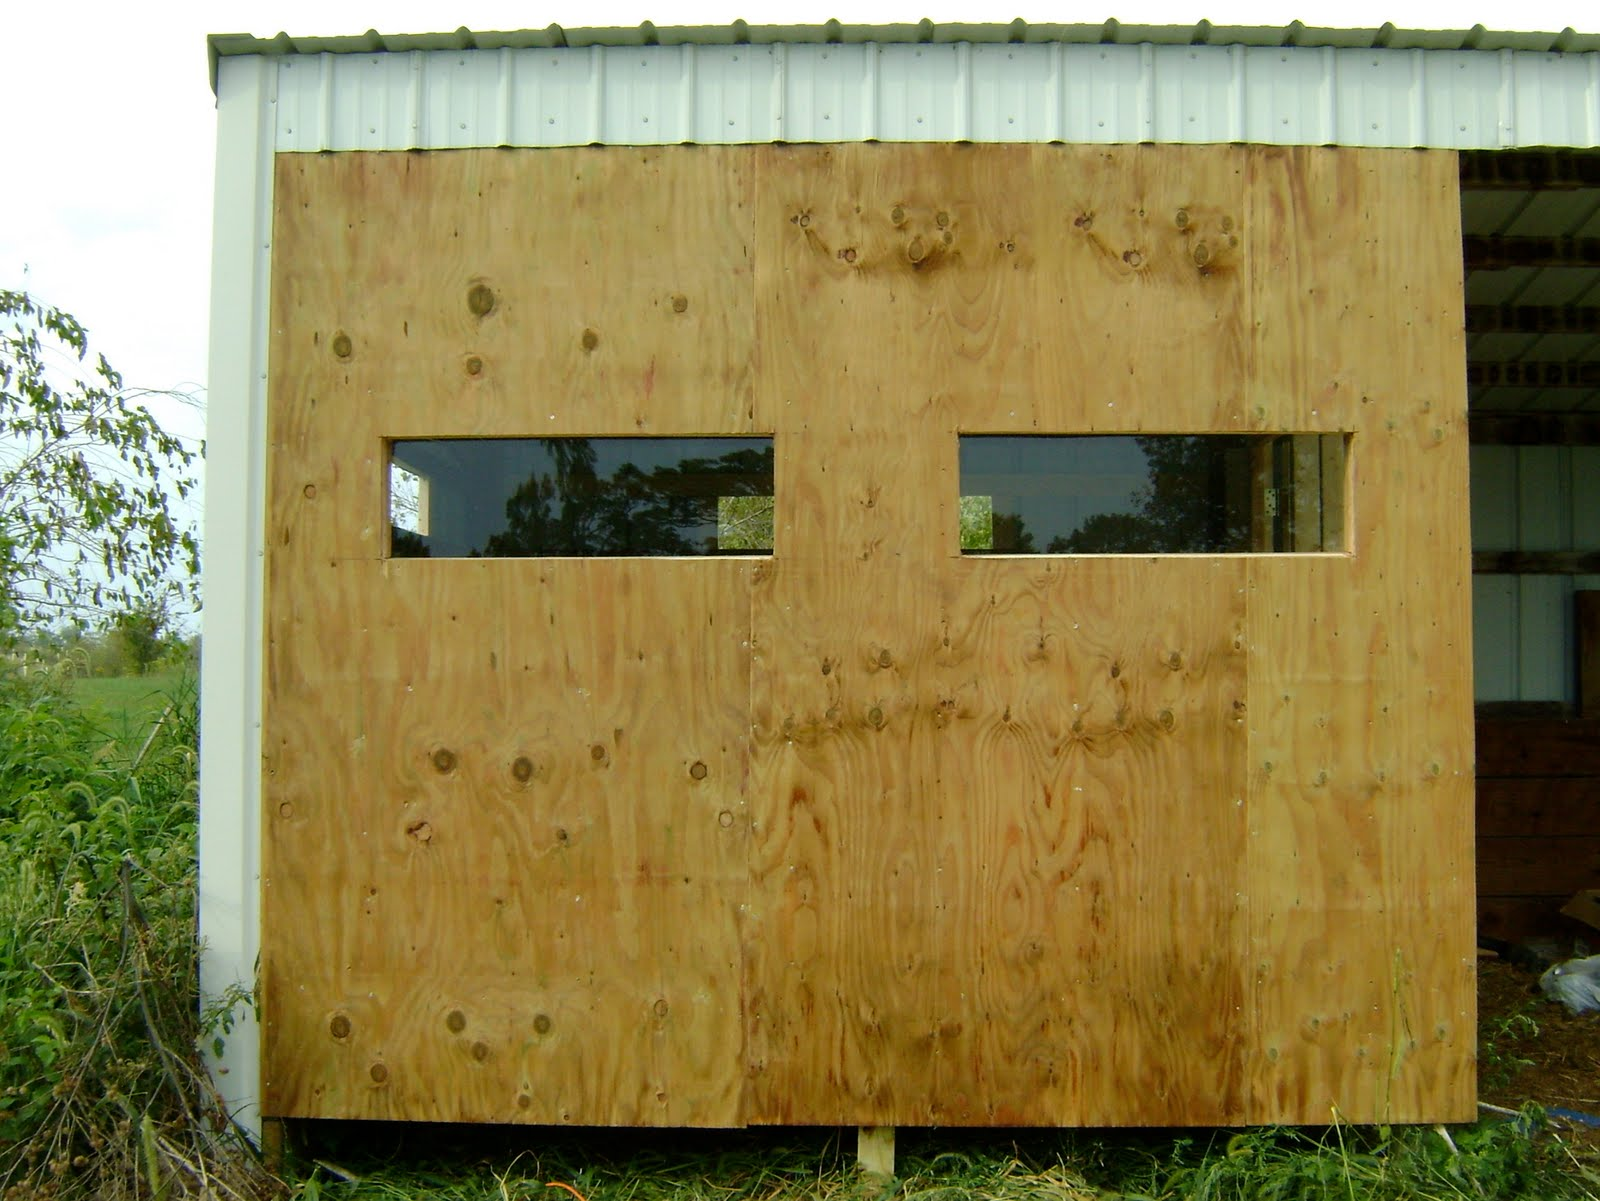 Herman brothers blog building a deer blind for hunting for Building deer blind windows